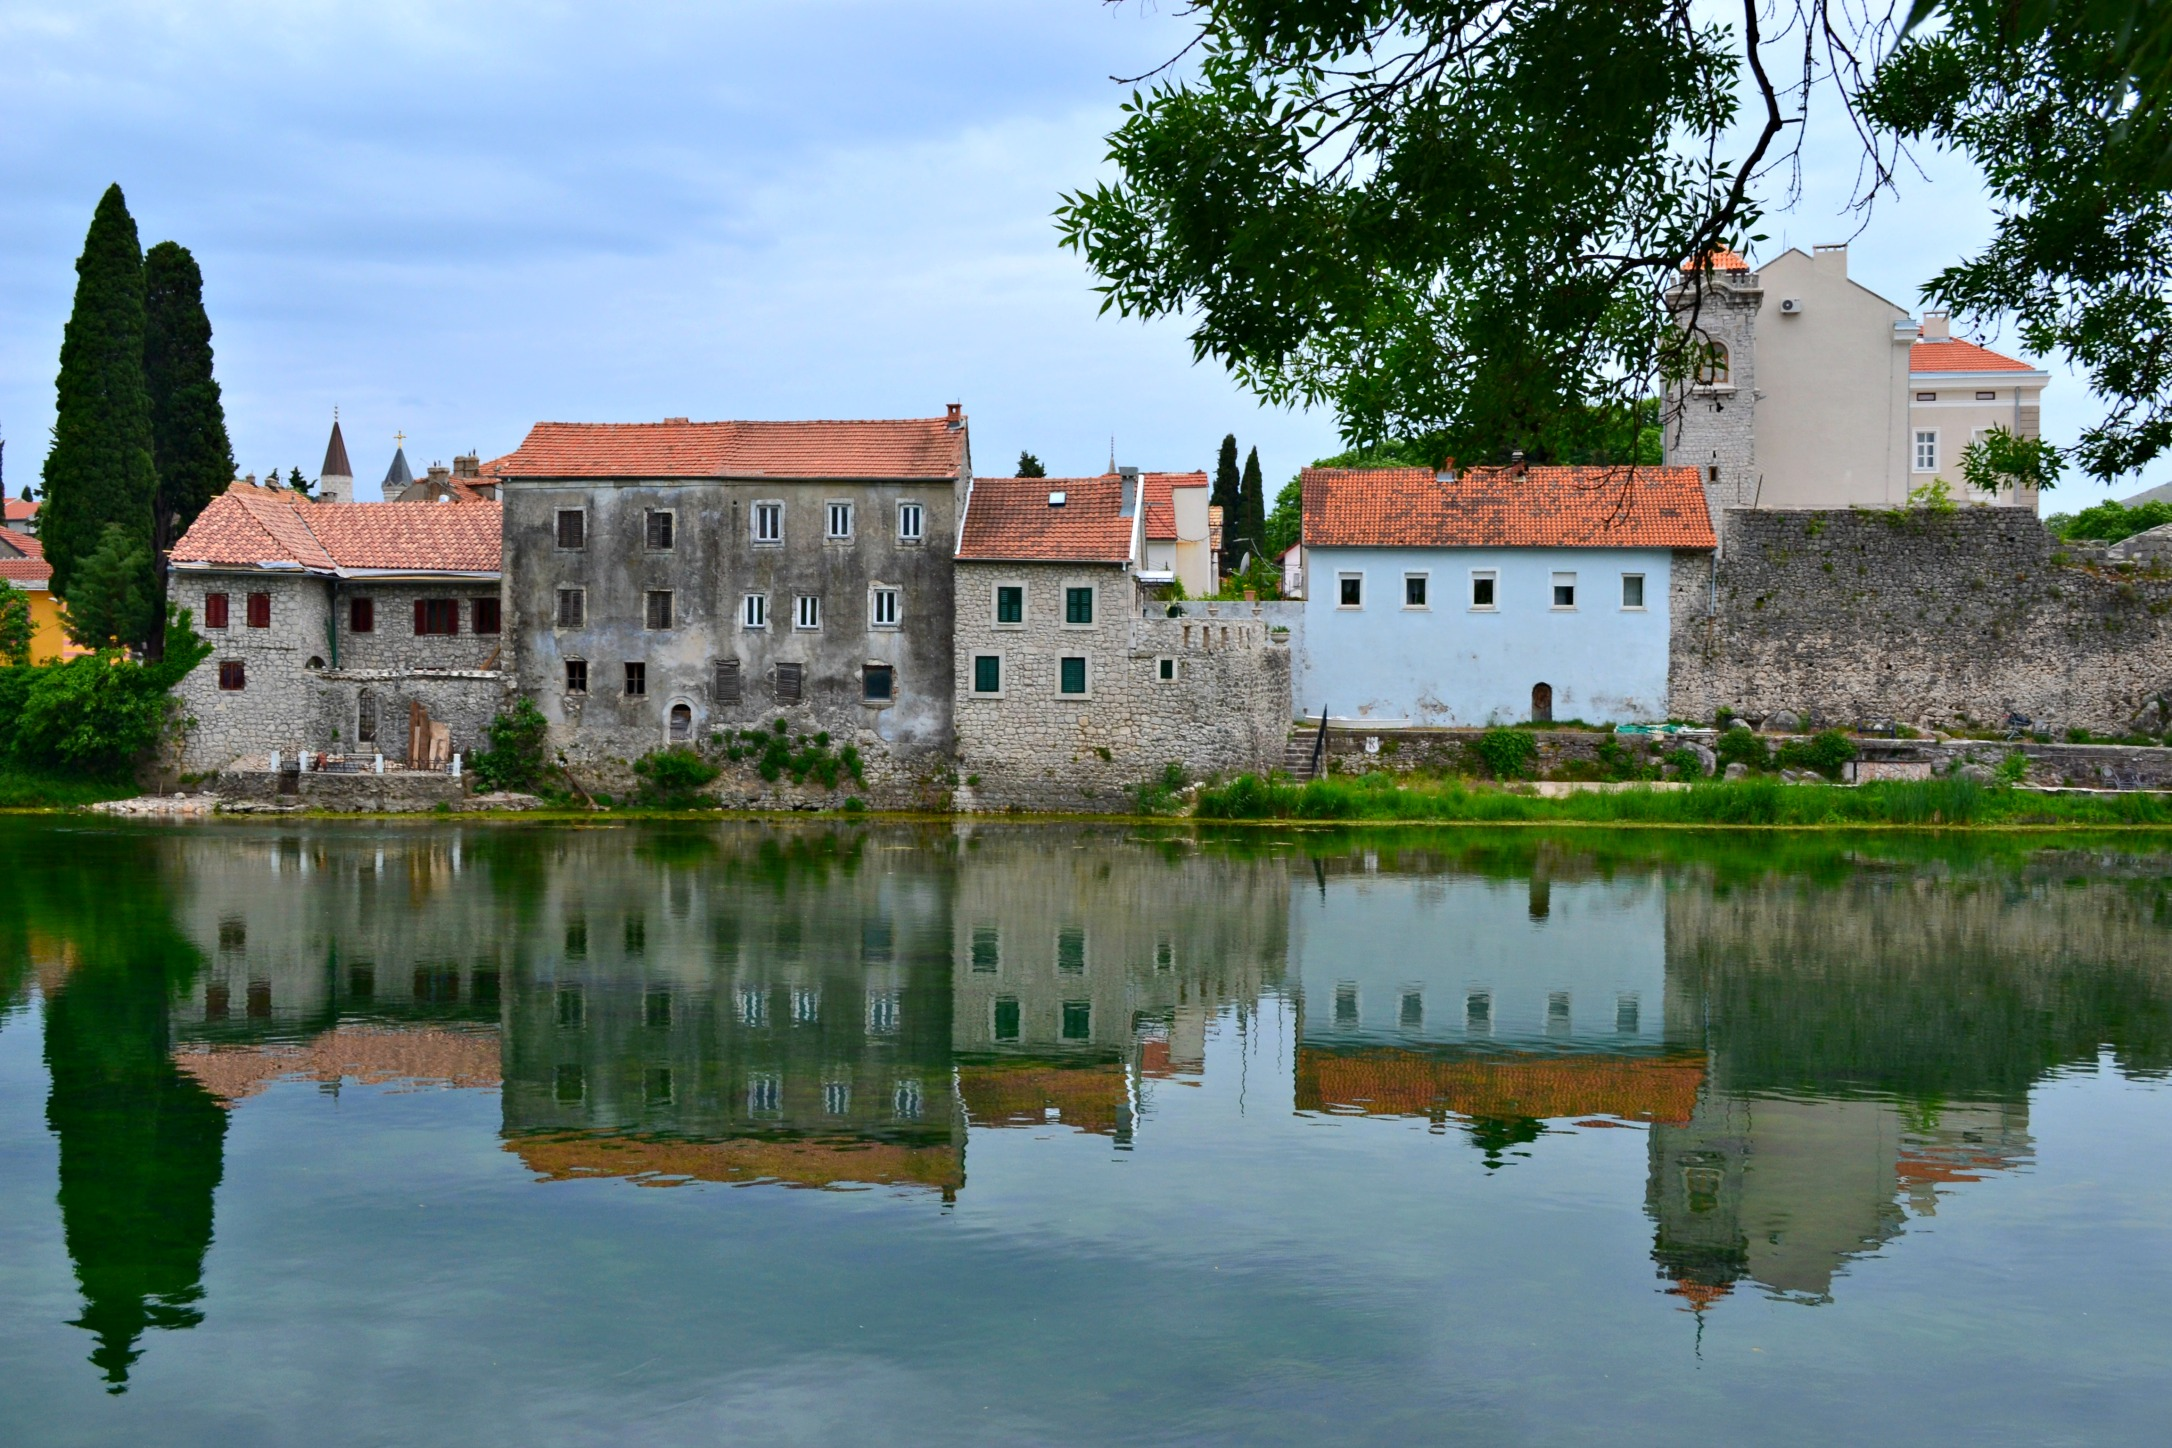 Trebinje, Bosnia and Herzegovina riverside